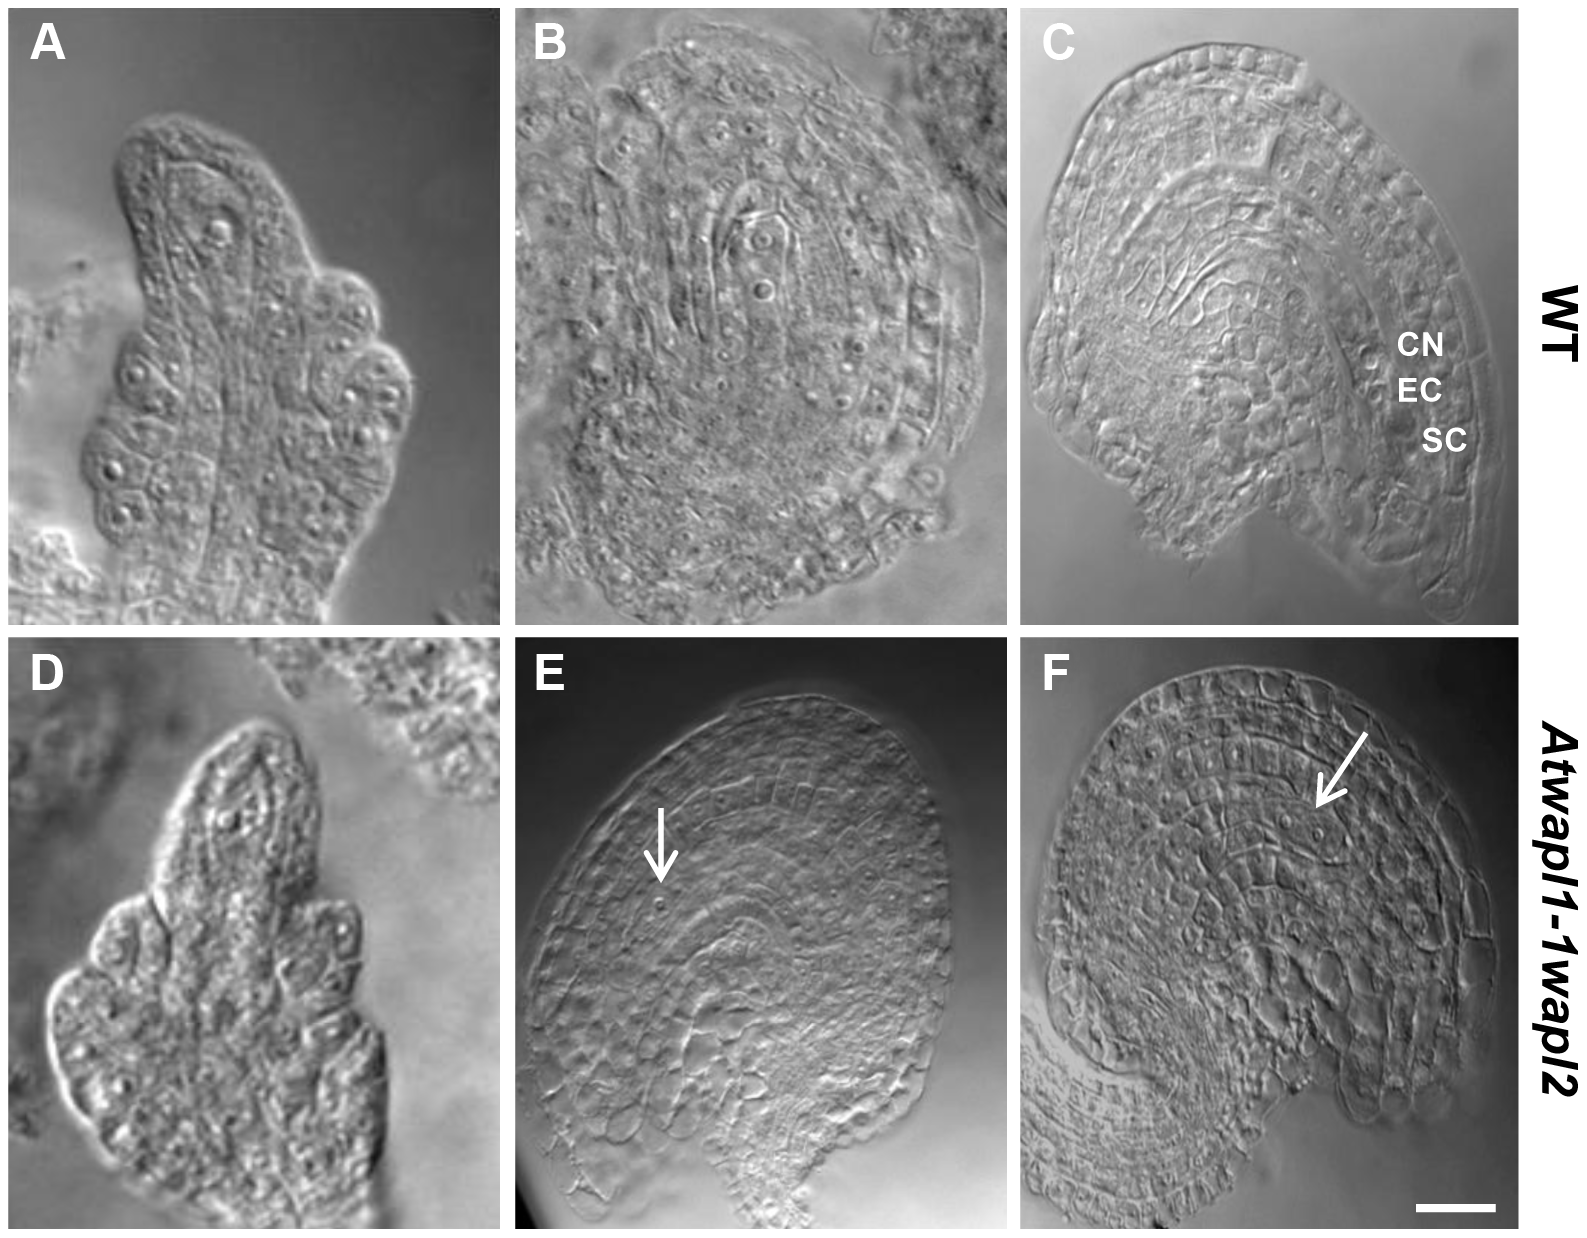 Female gametophyte development is altered in <i>Atwapl1-1wapl2</i> plants.